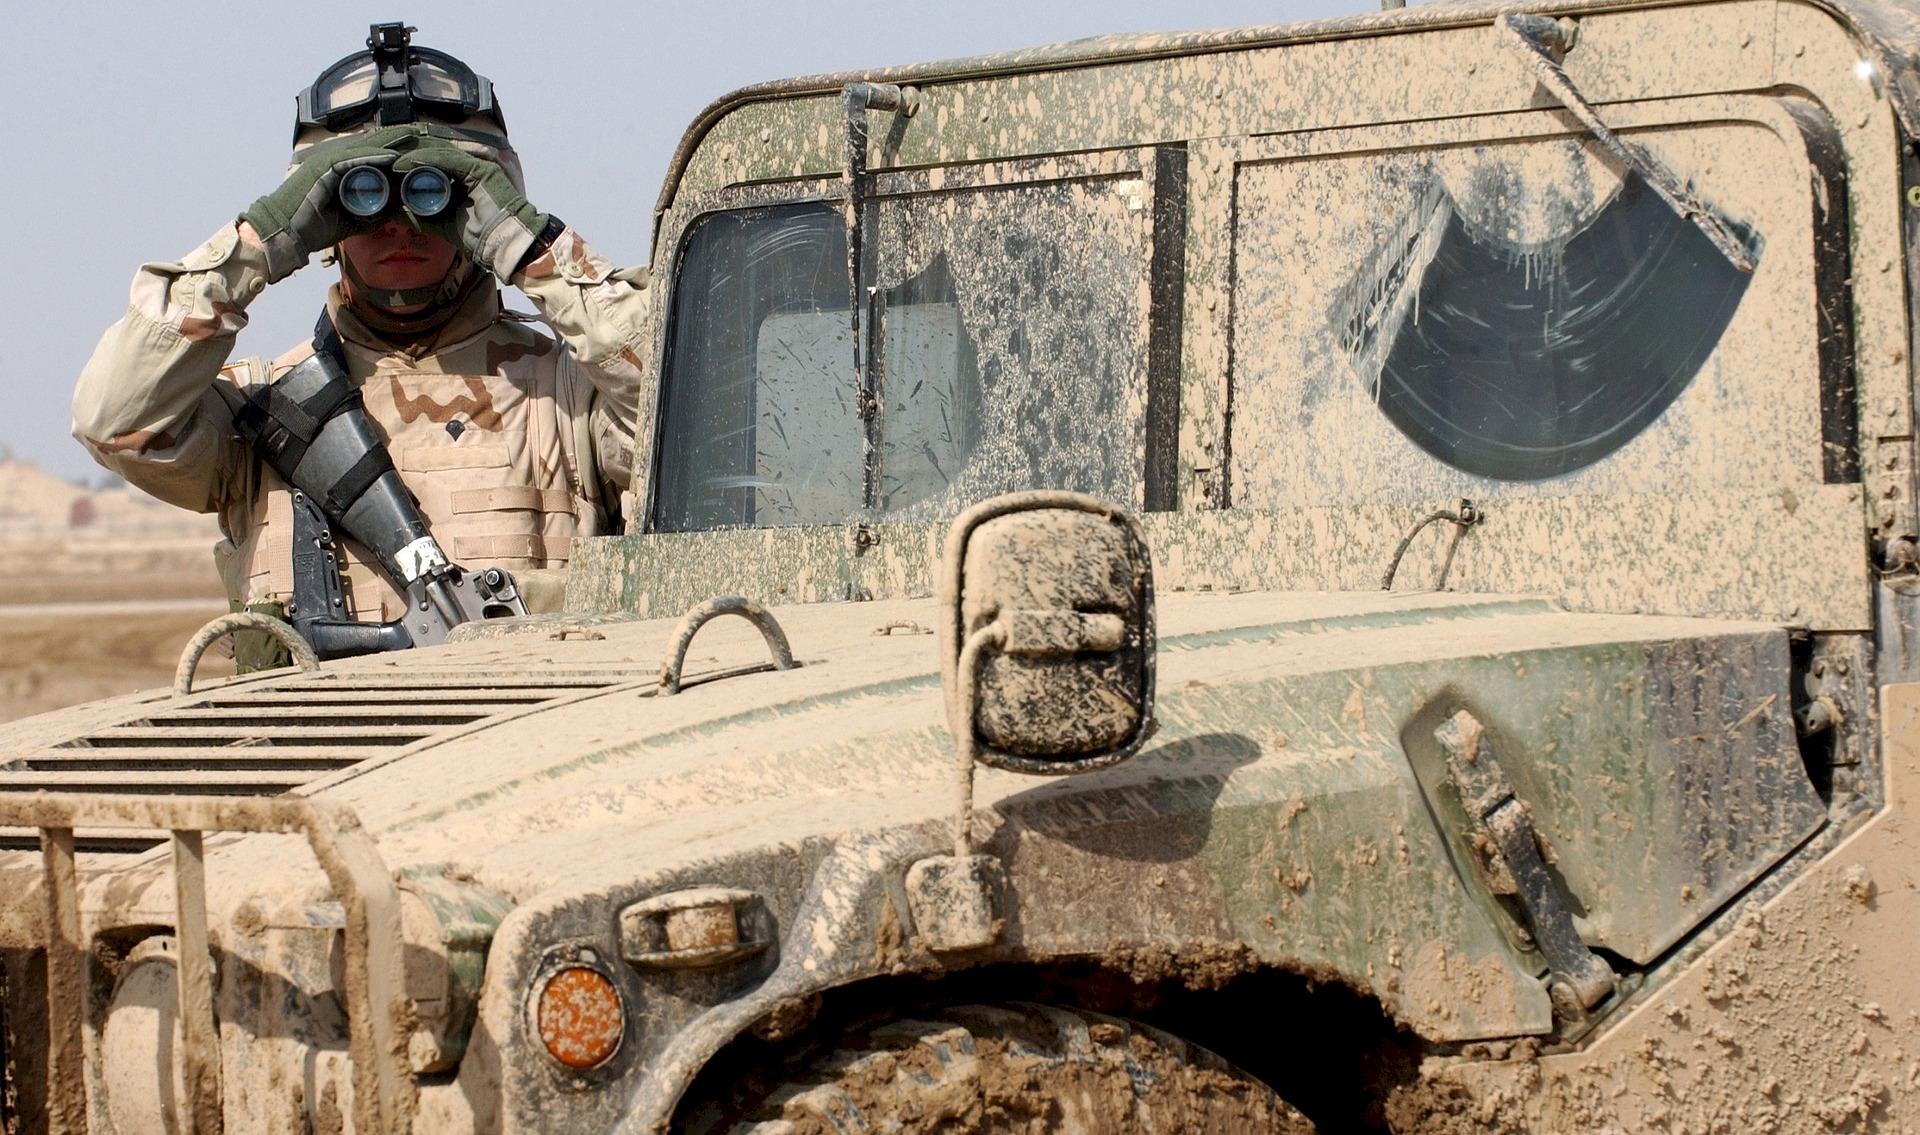 Managing submersion for military vehicles